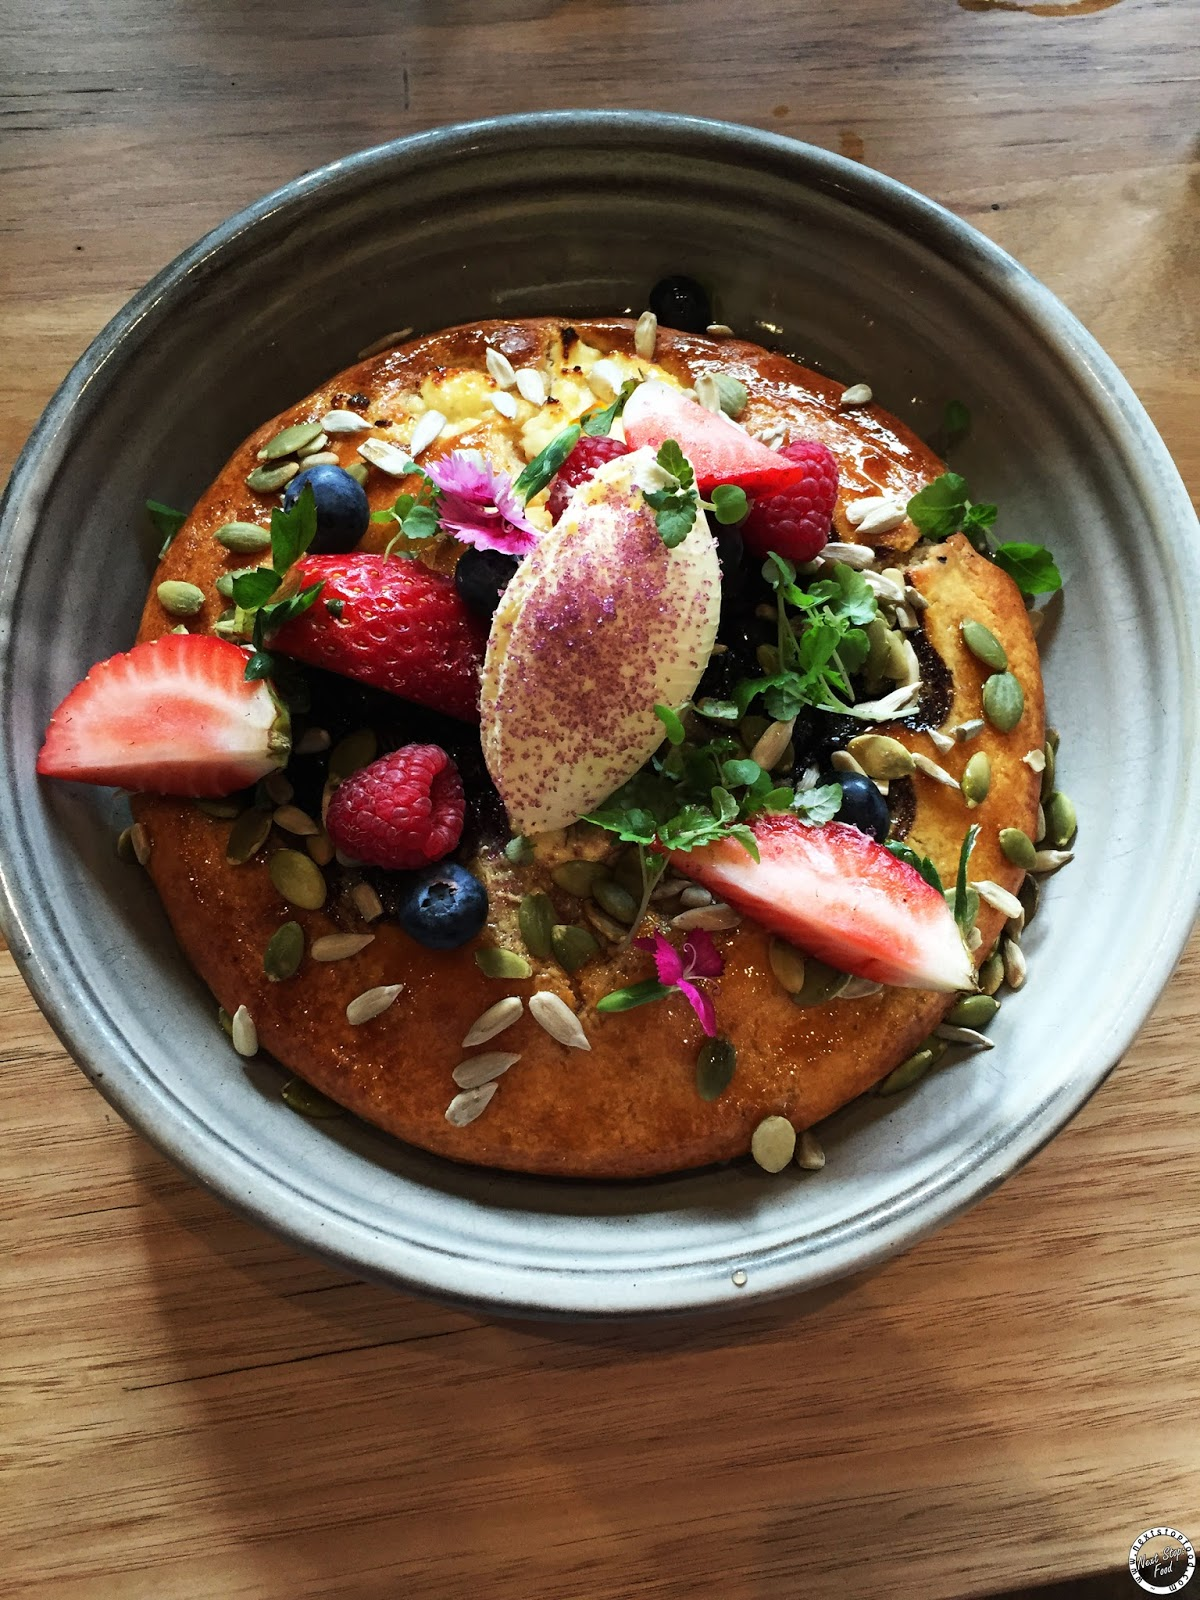 Next stop food food blogger located in sydney australia top top paddock cafe pretty and delicious hotcake forumfinder Image collections